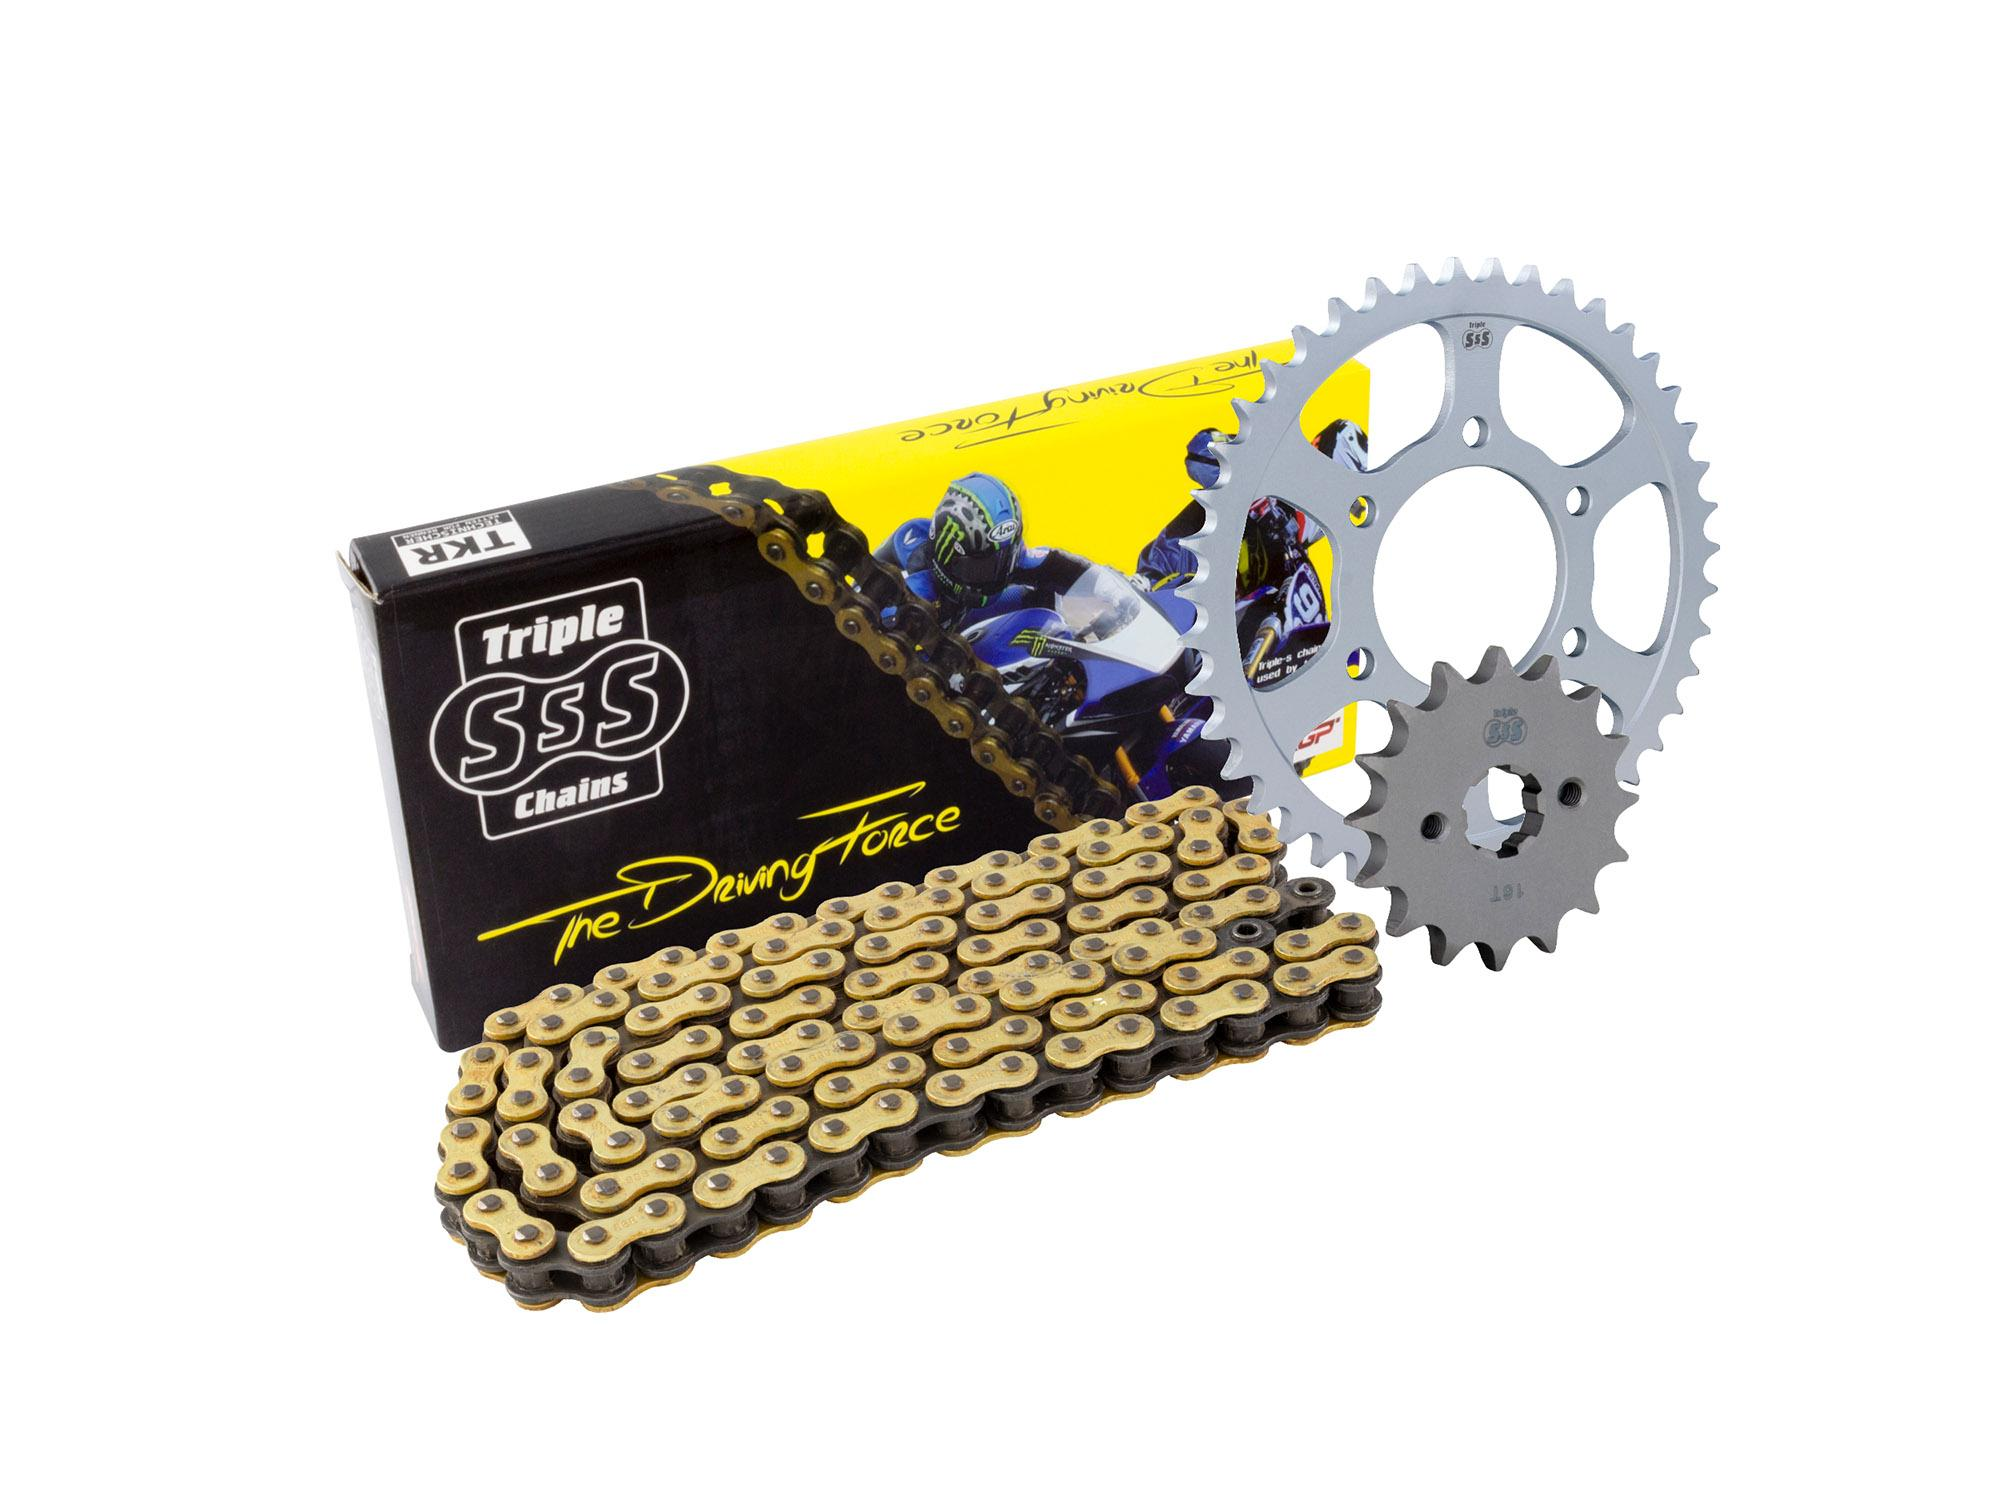 Triumph 865 Scrambler 06-10 Chain & Sprocket Kit: 18T Front, 43T Rear, HD O-Ring Gold Chain 525H 106 Link